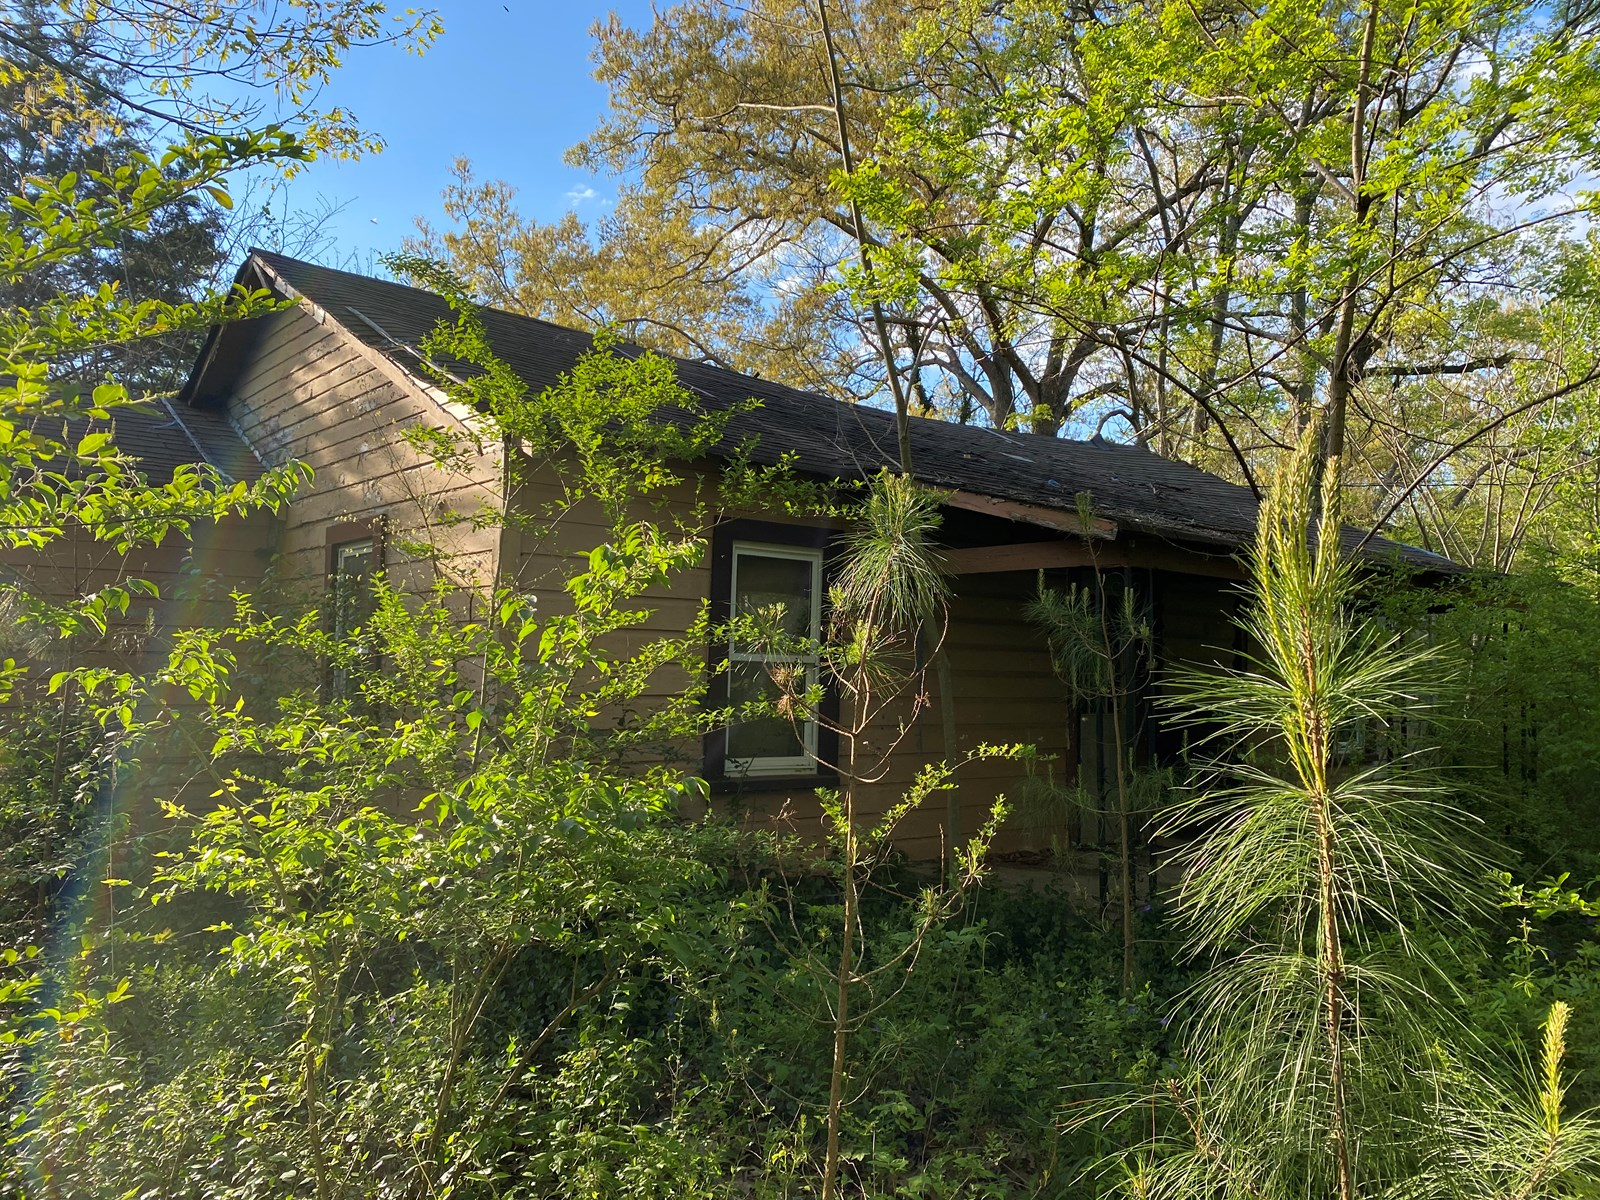 House For Sale in Lawrenceburg Tennessee